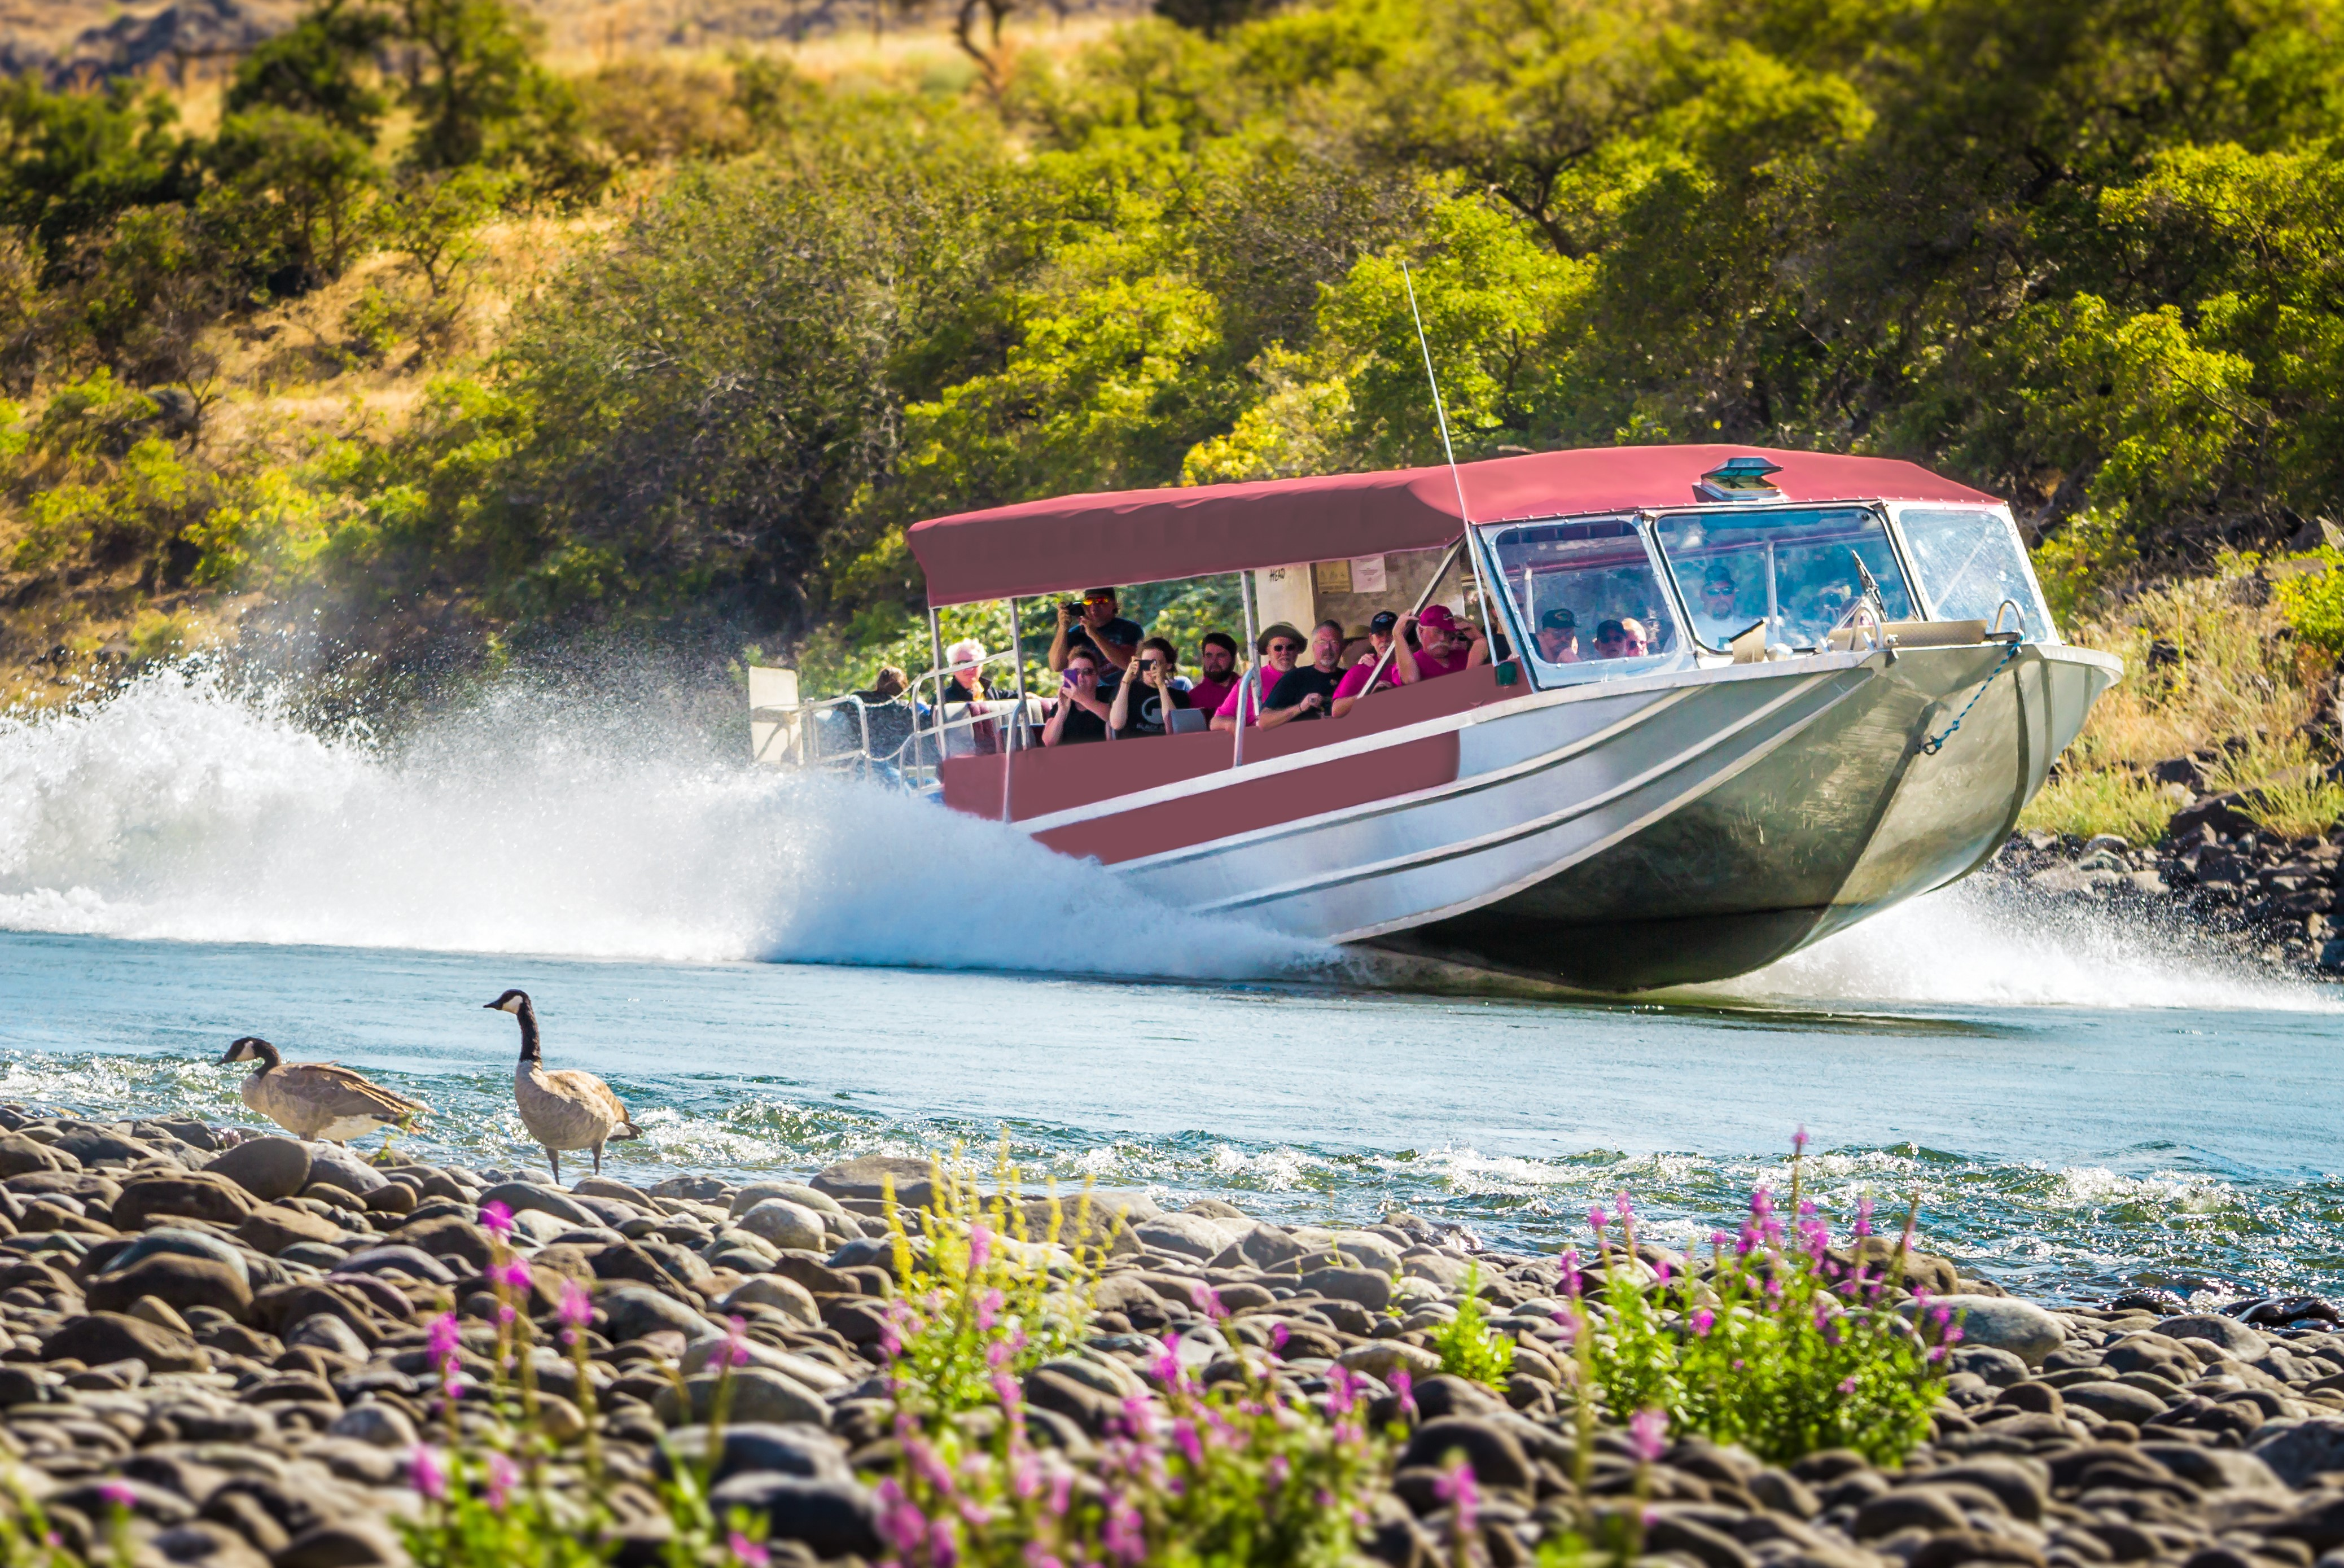 North America's Deepest River Gorge — A jet boat with red canopy skims across a river.